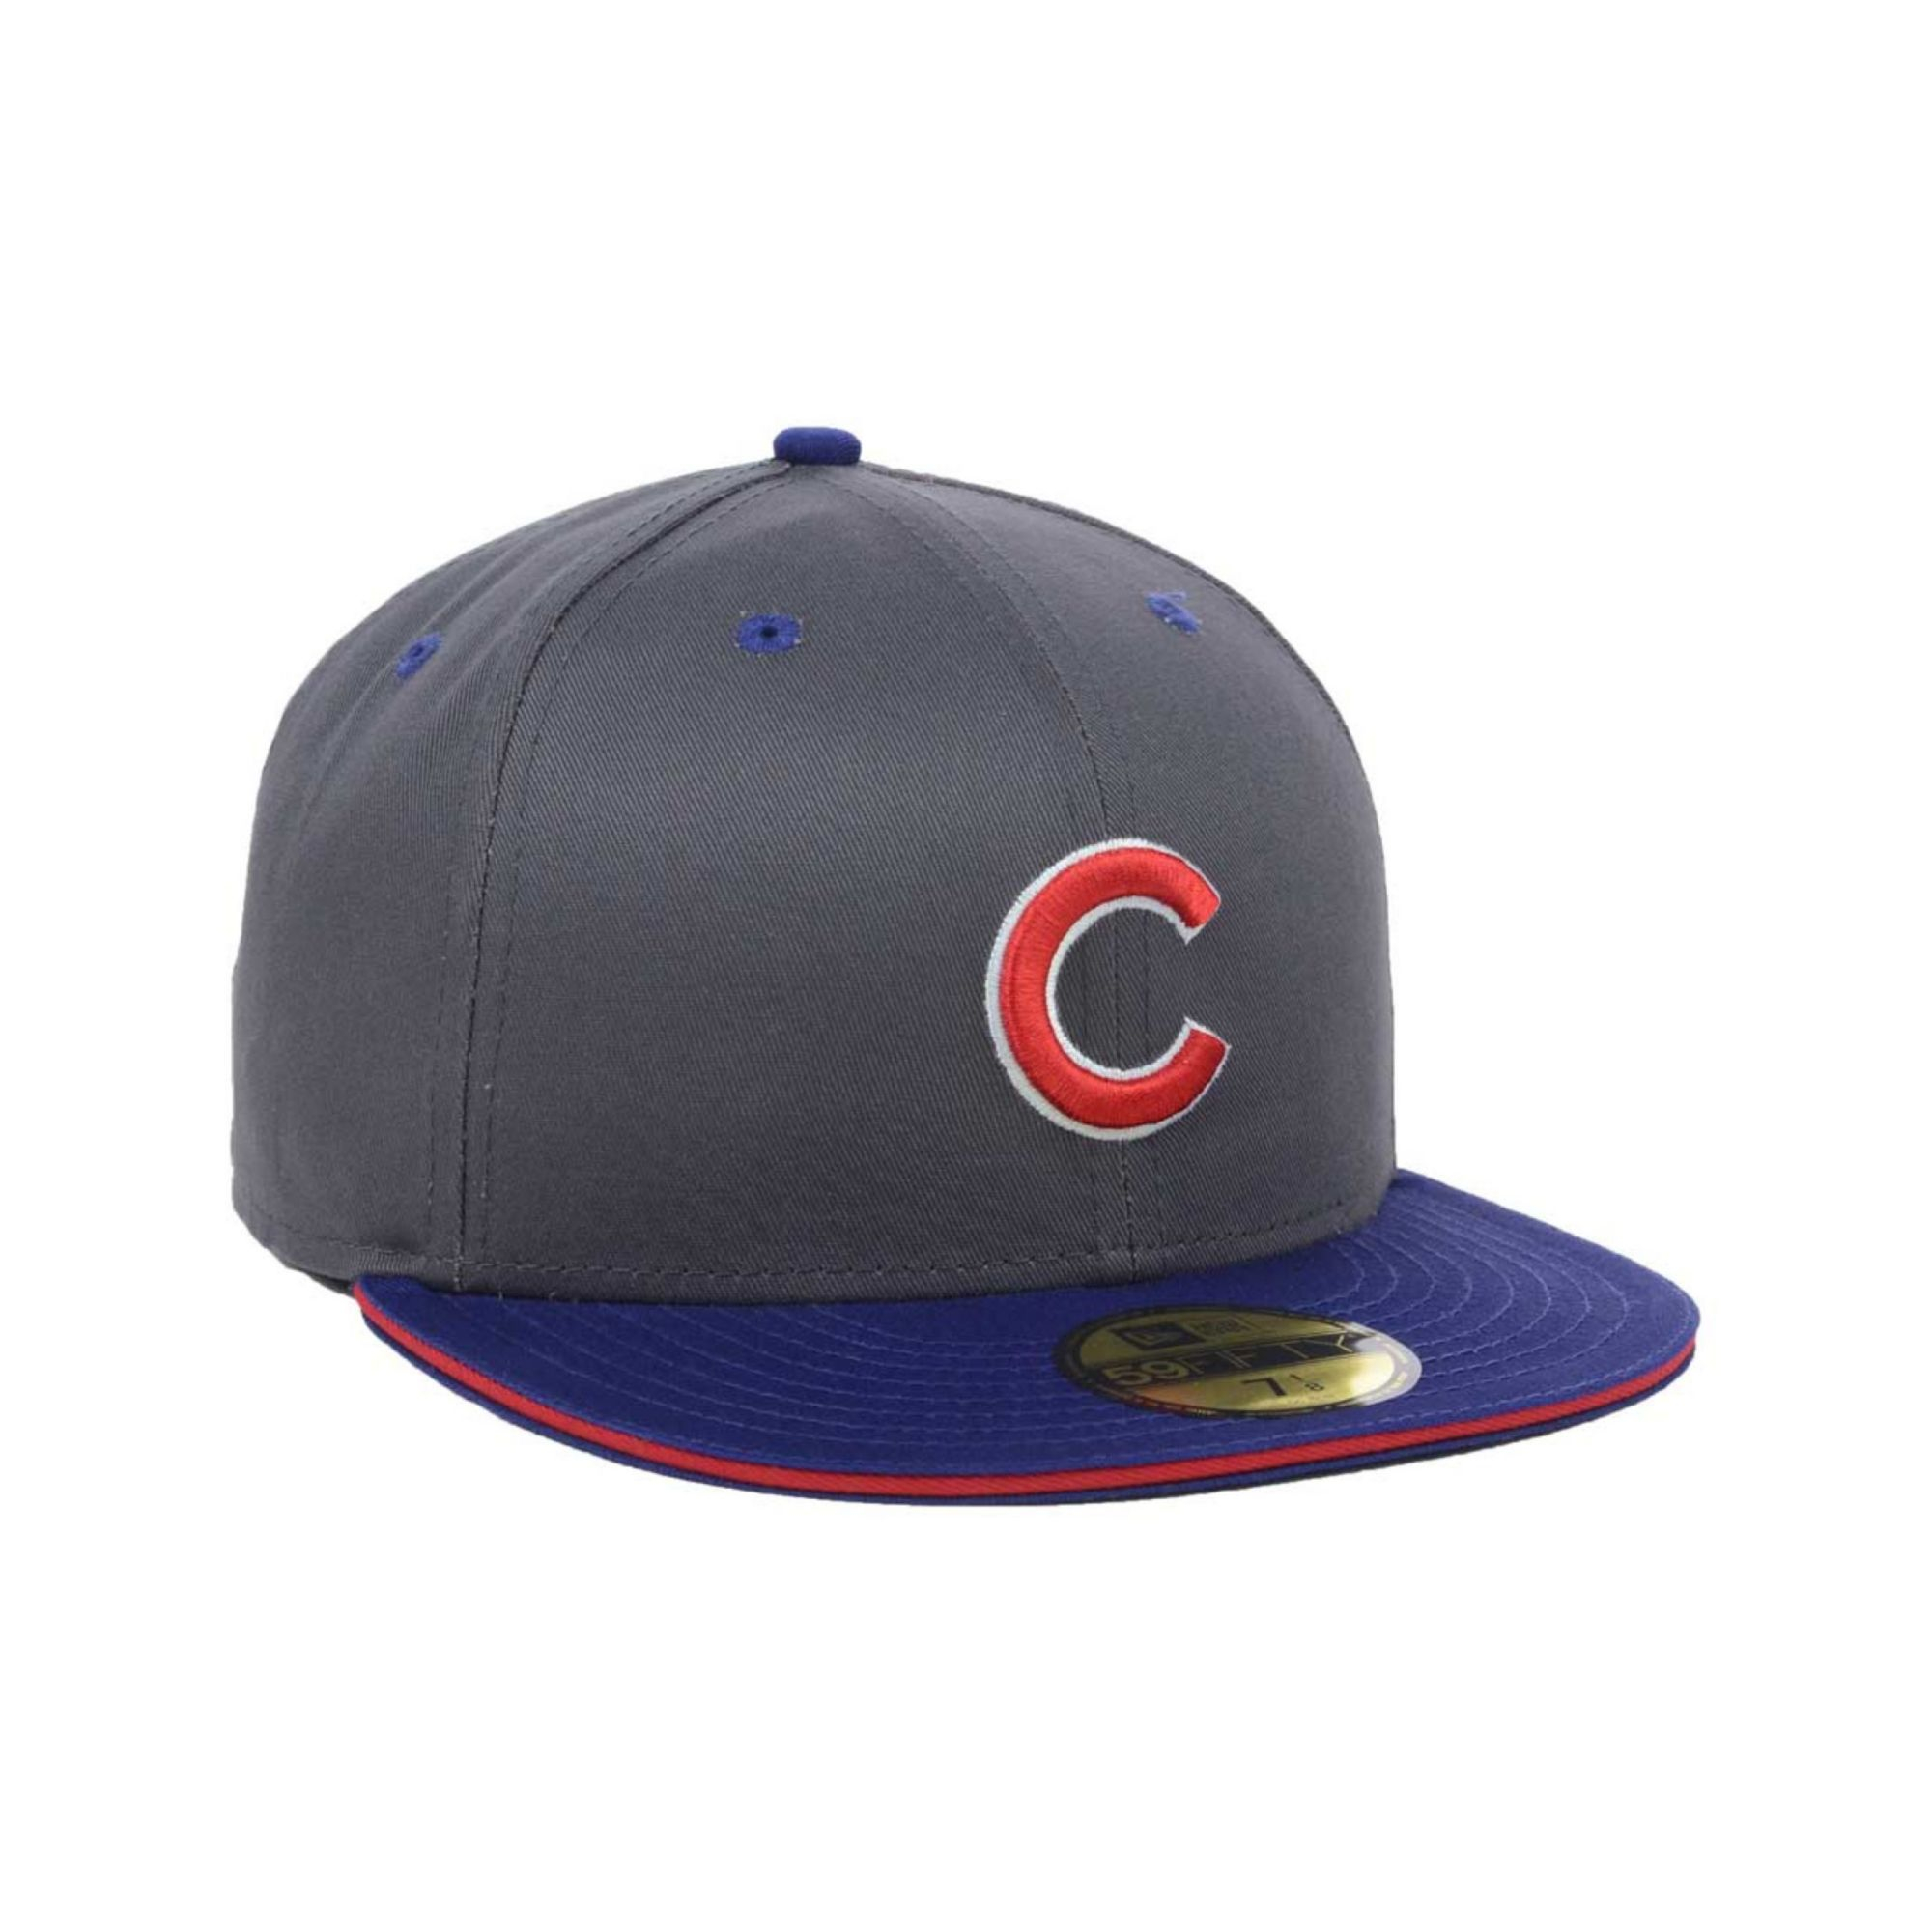 2015bbe1037 Lyst - KTZ Chicago Cubs Opening Day 59fifty Cap in Blue for Men